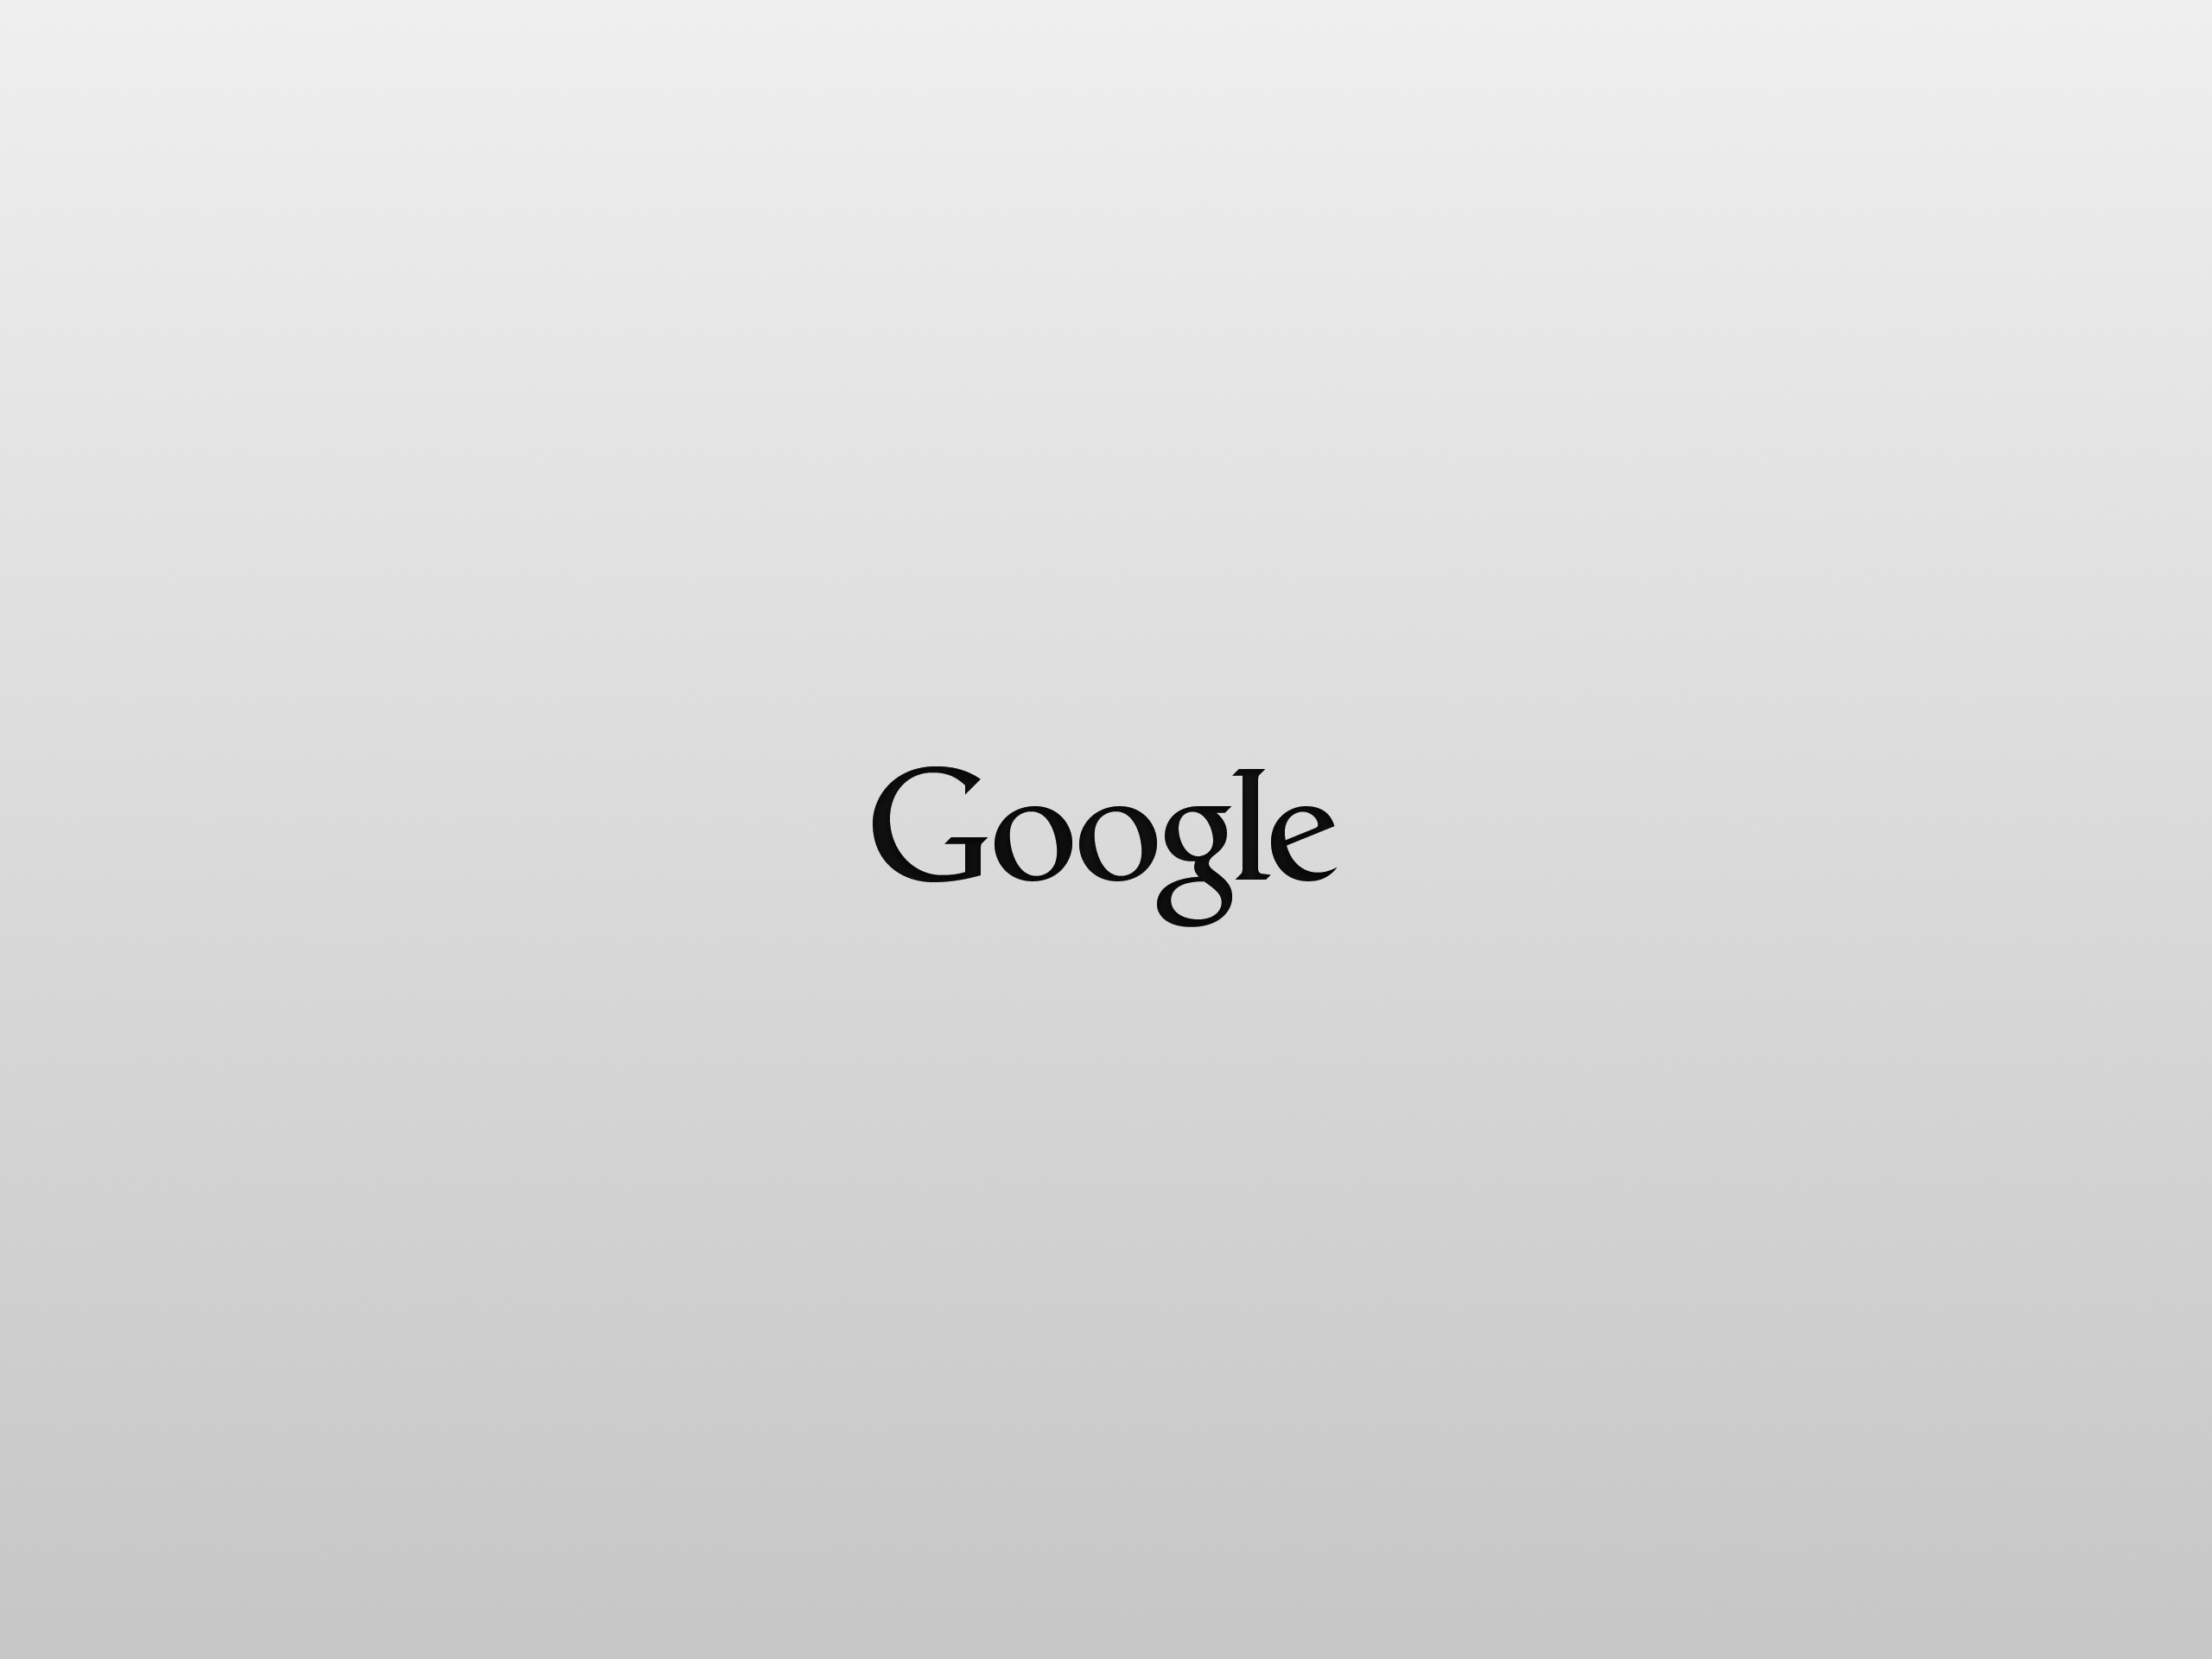 google hd wallpapers